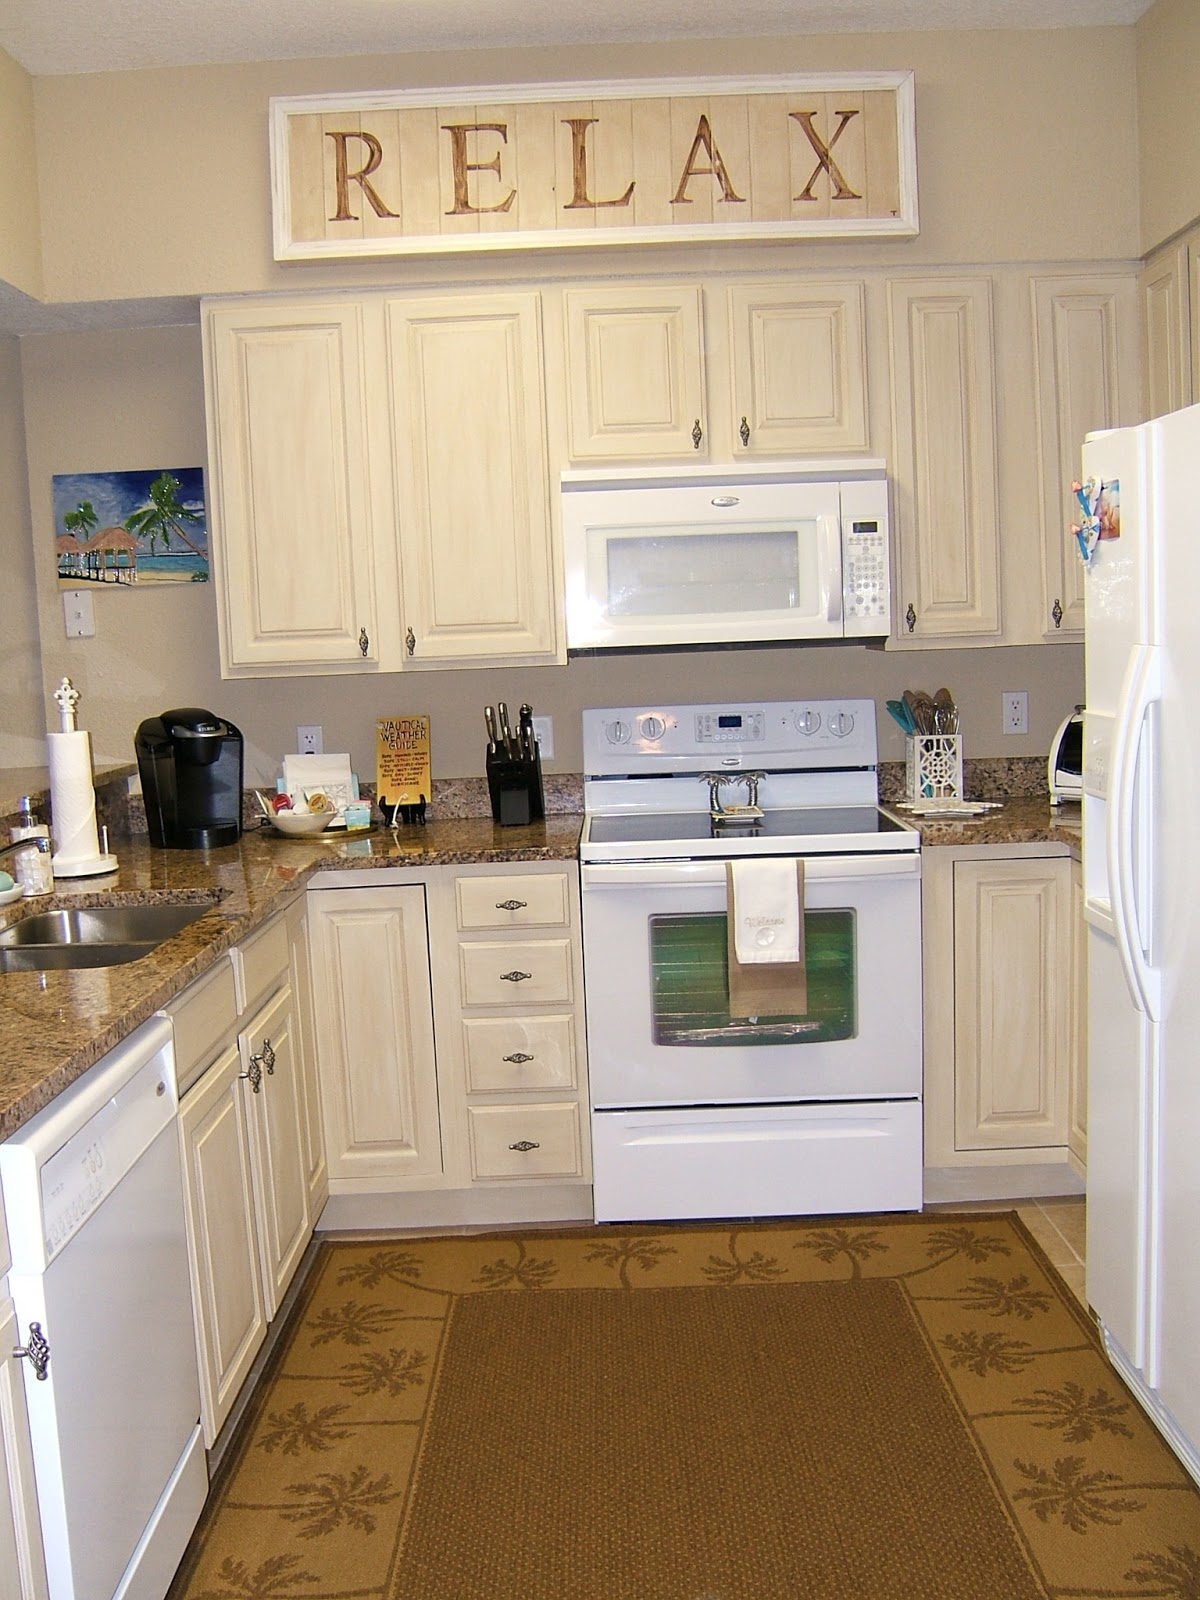 Kitchen Rug Ideas: Nay or Yea? | HomesFeed